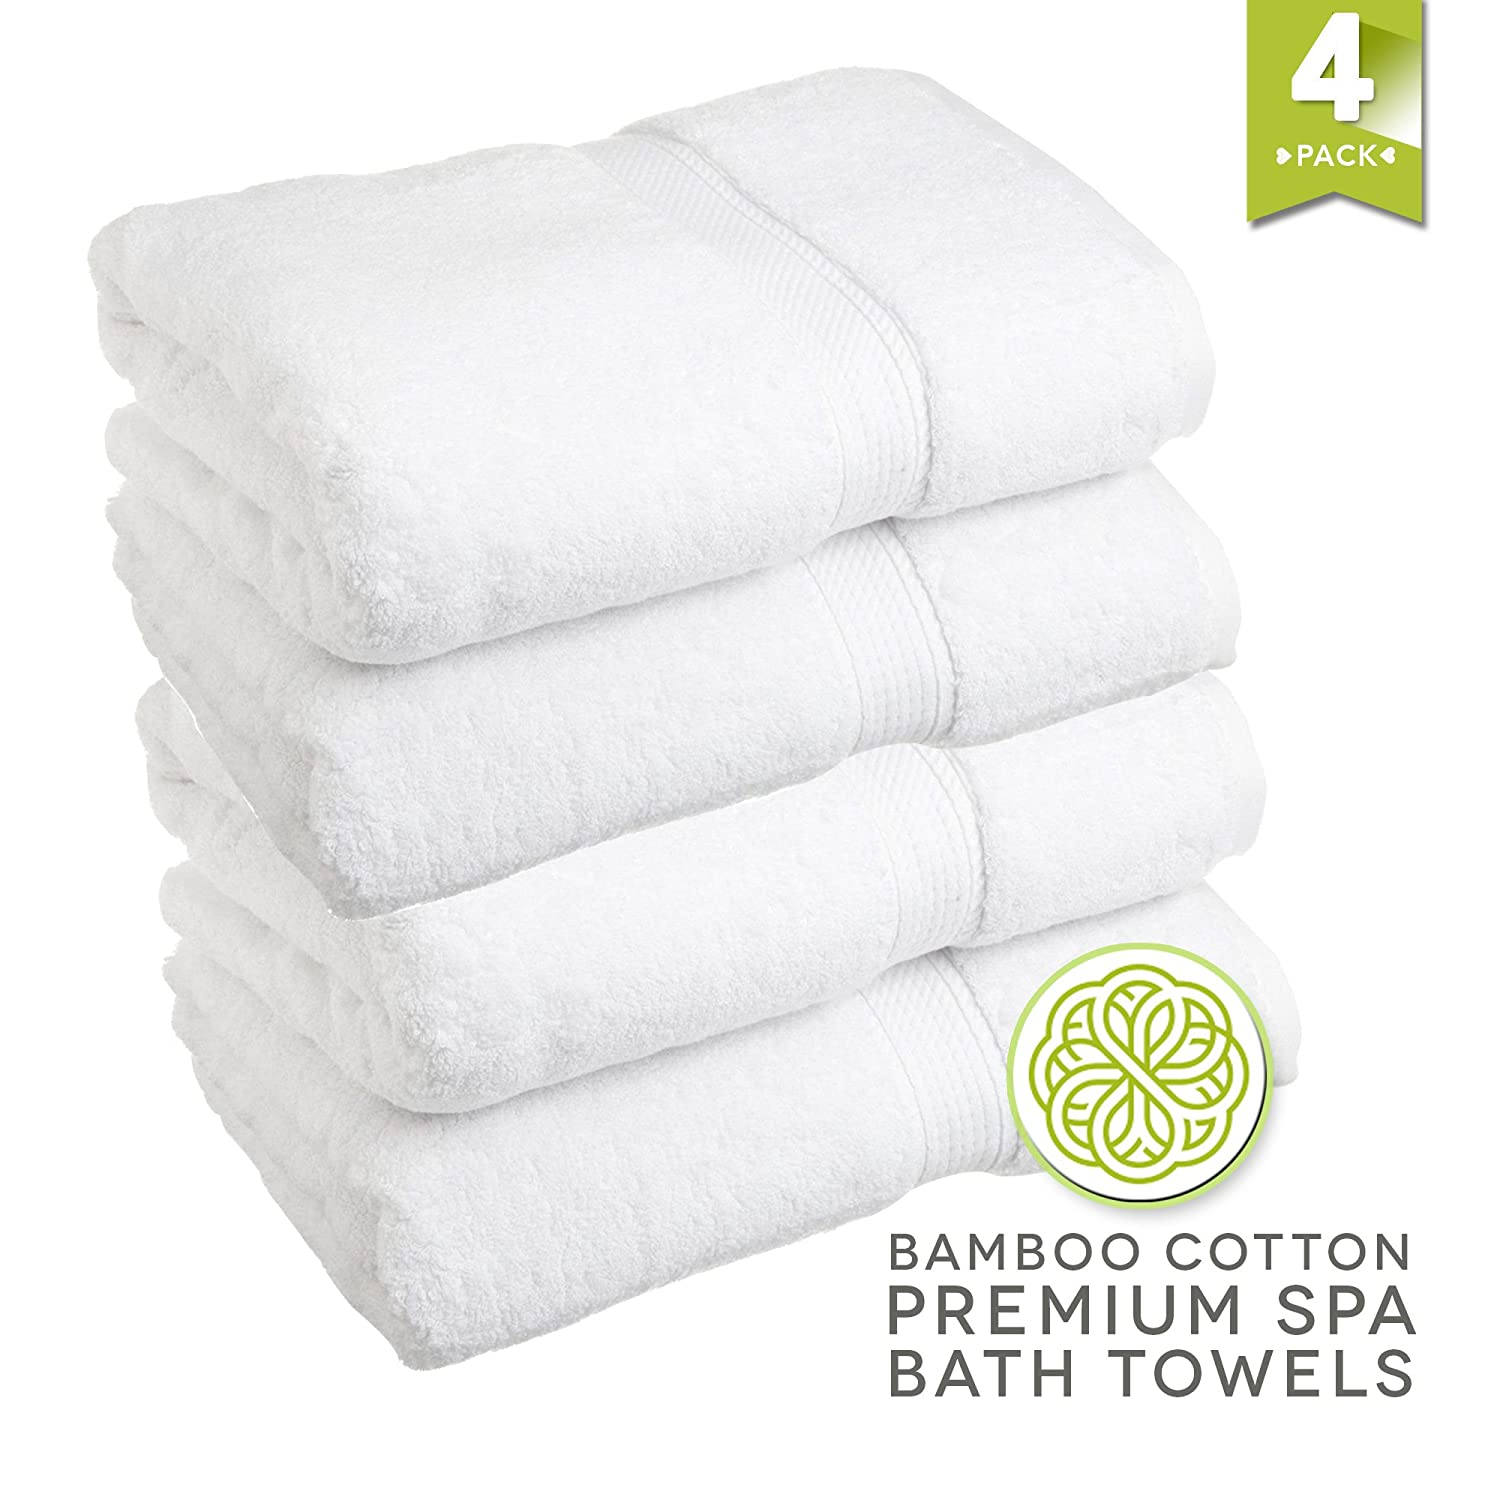 LionFinch Premium Bamboo Cotton Towels- Set of 4. Super Soft Absorbent Plus Mold Mildew Resistant. 54 inches Long 27 inches Wide. Easy to Wash Dry.